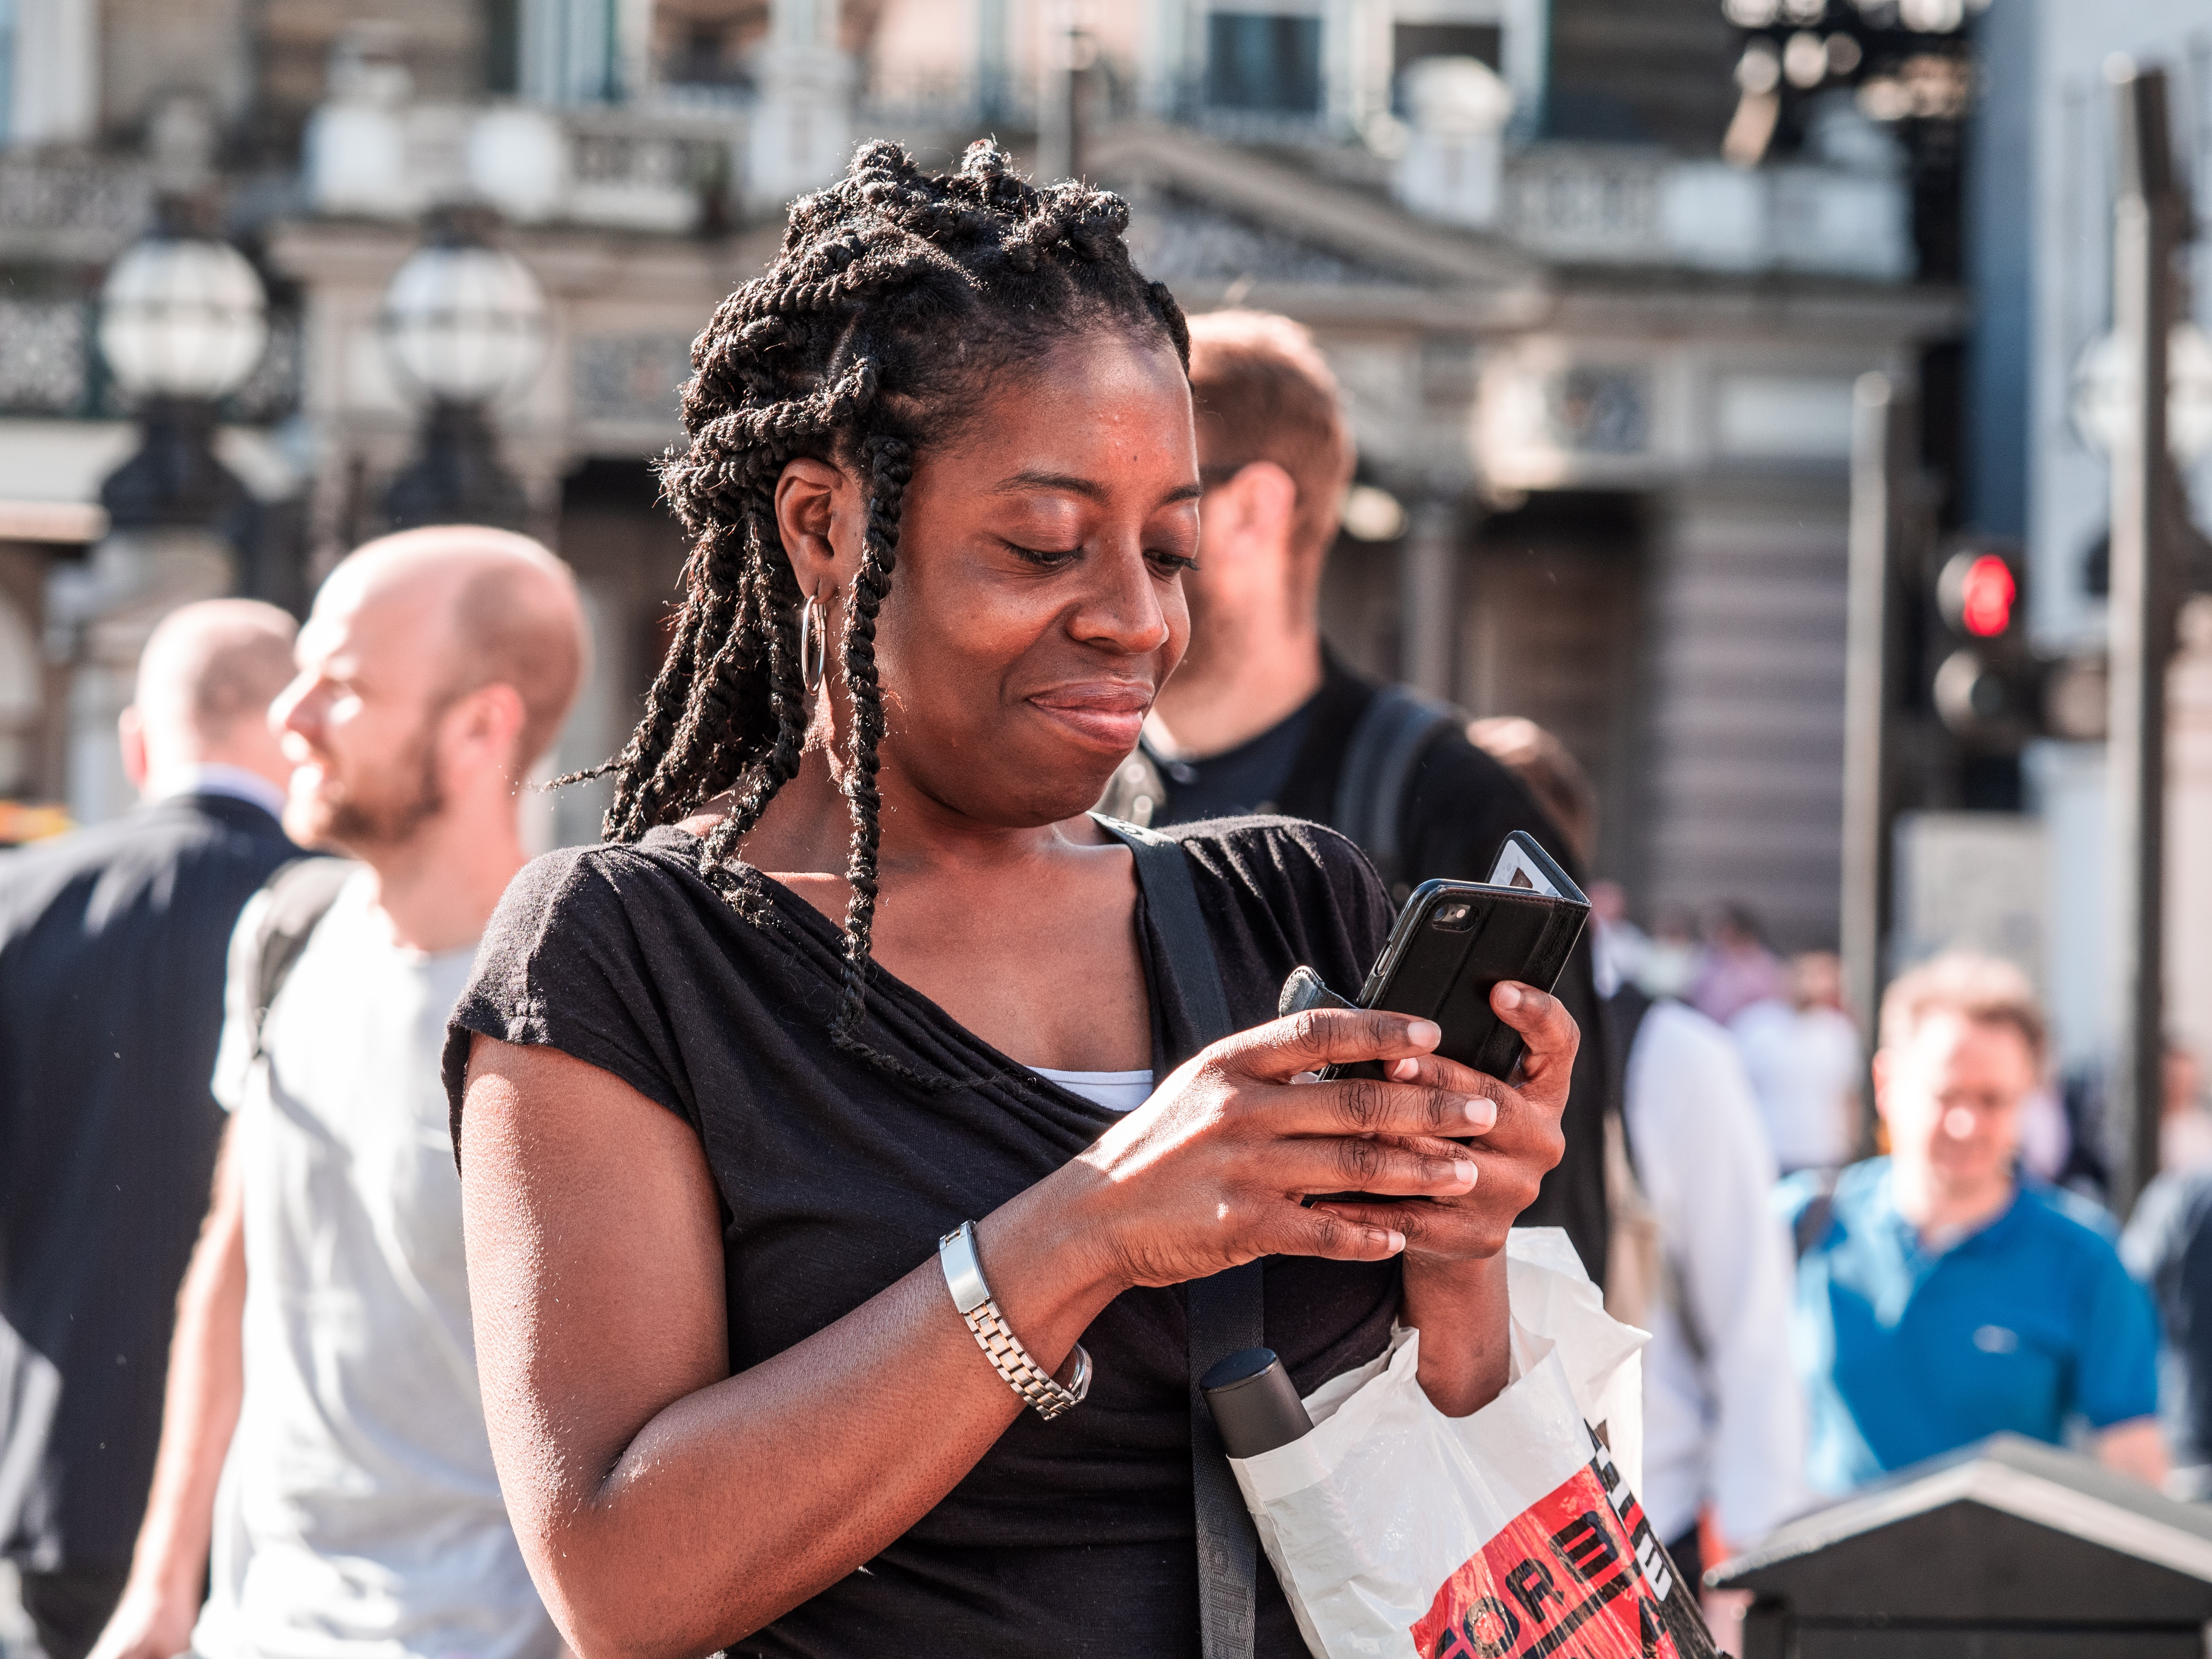 Woman smiling and looking at phone